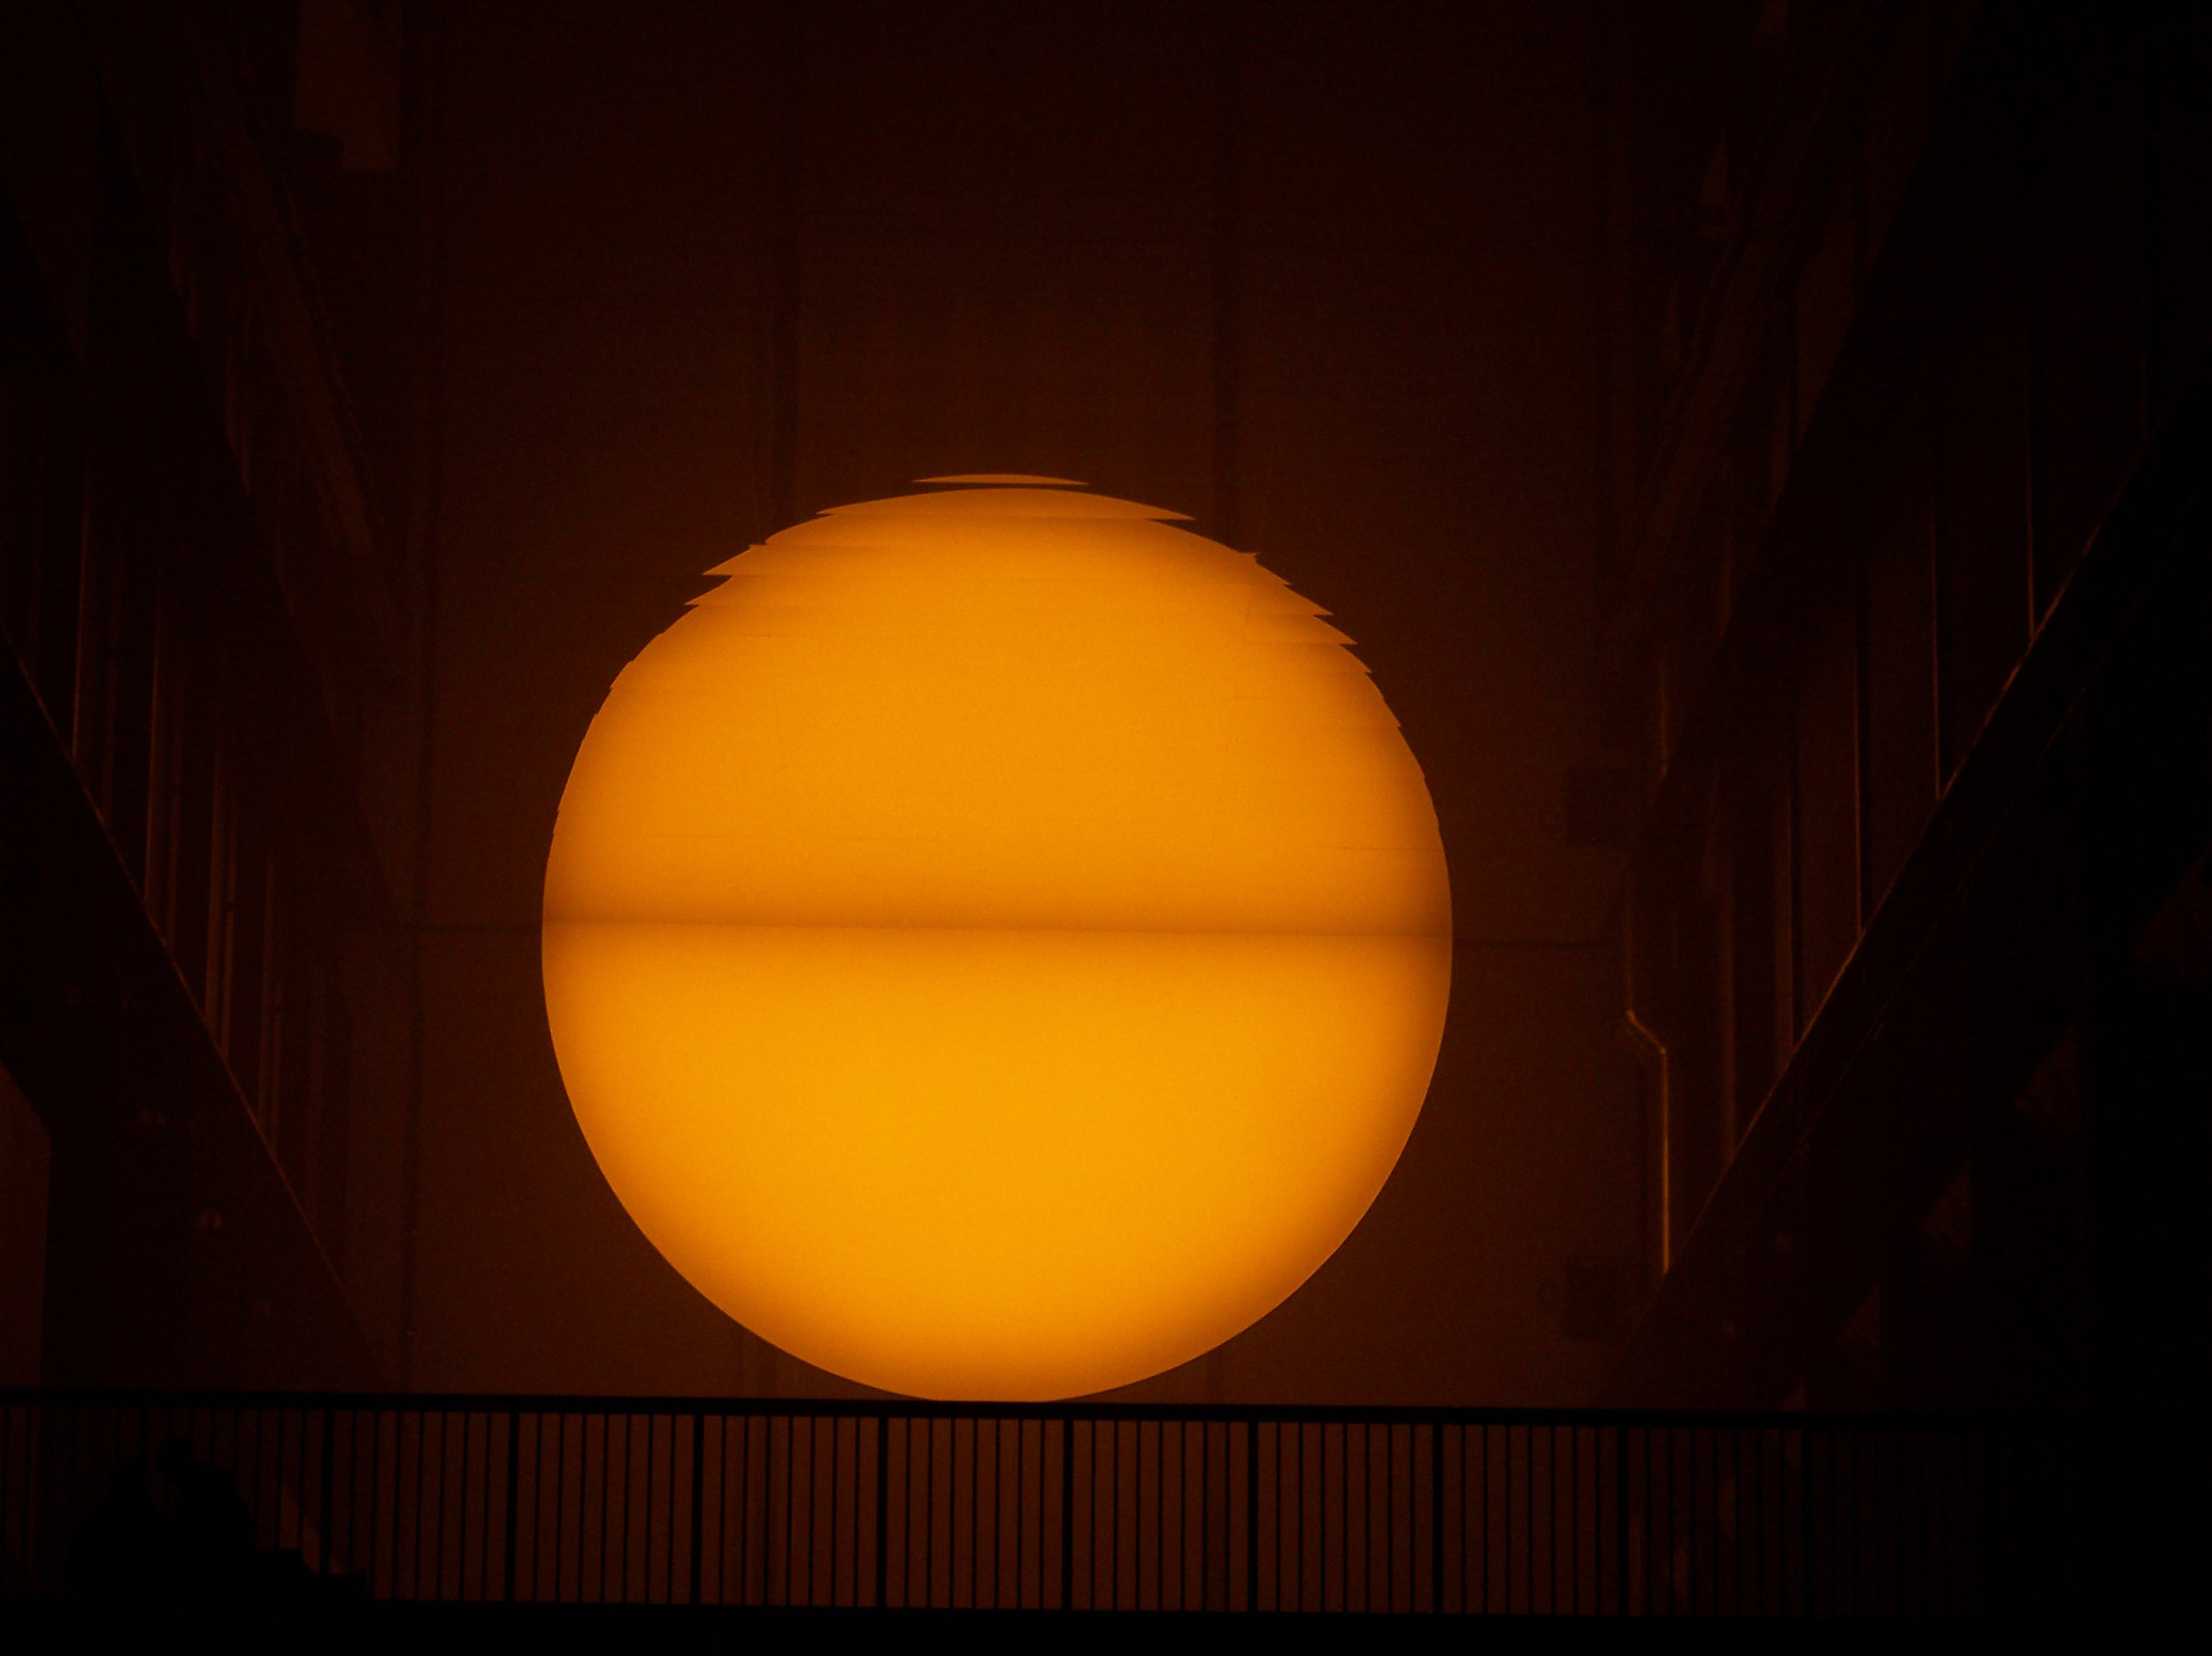 2004_01-08_Olafur-Eliasson_The-Weather-Project-[Tate-Modern]_7_Photograph_James-Bulley.jpg